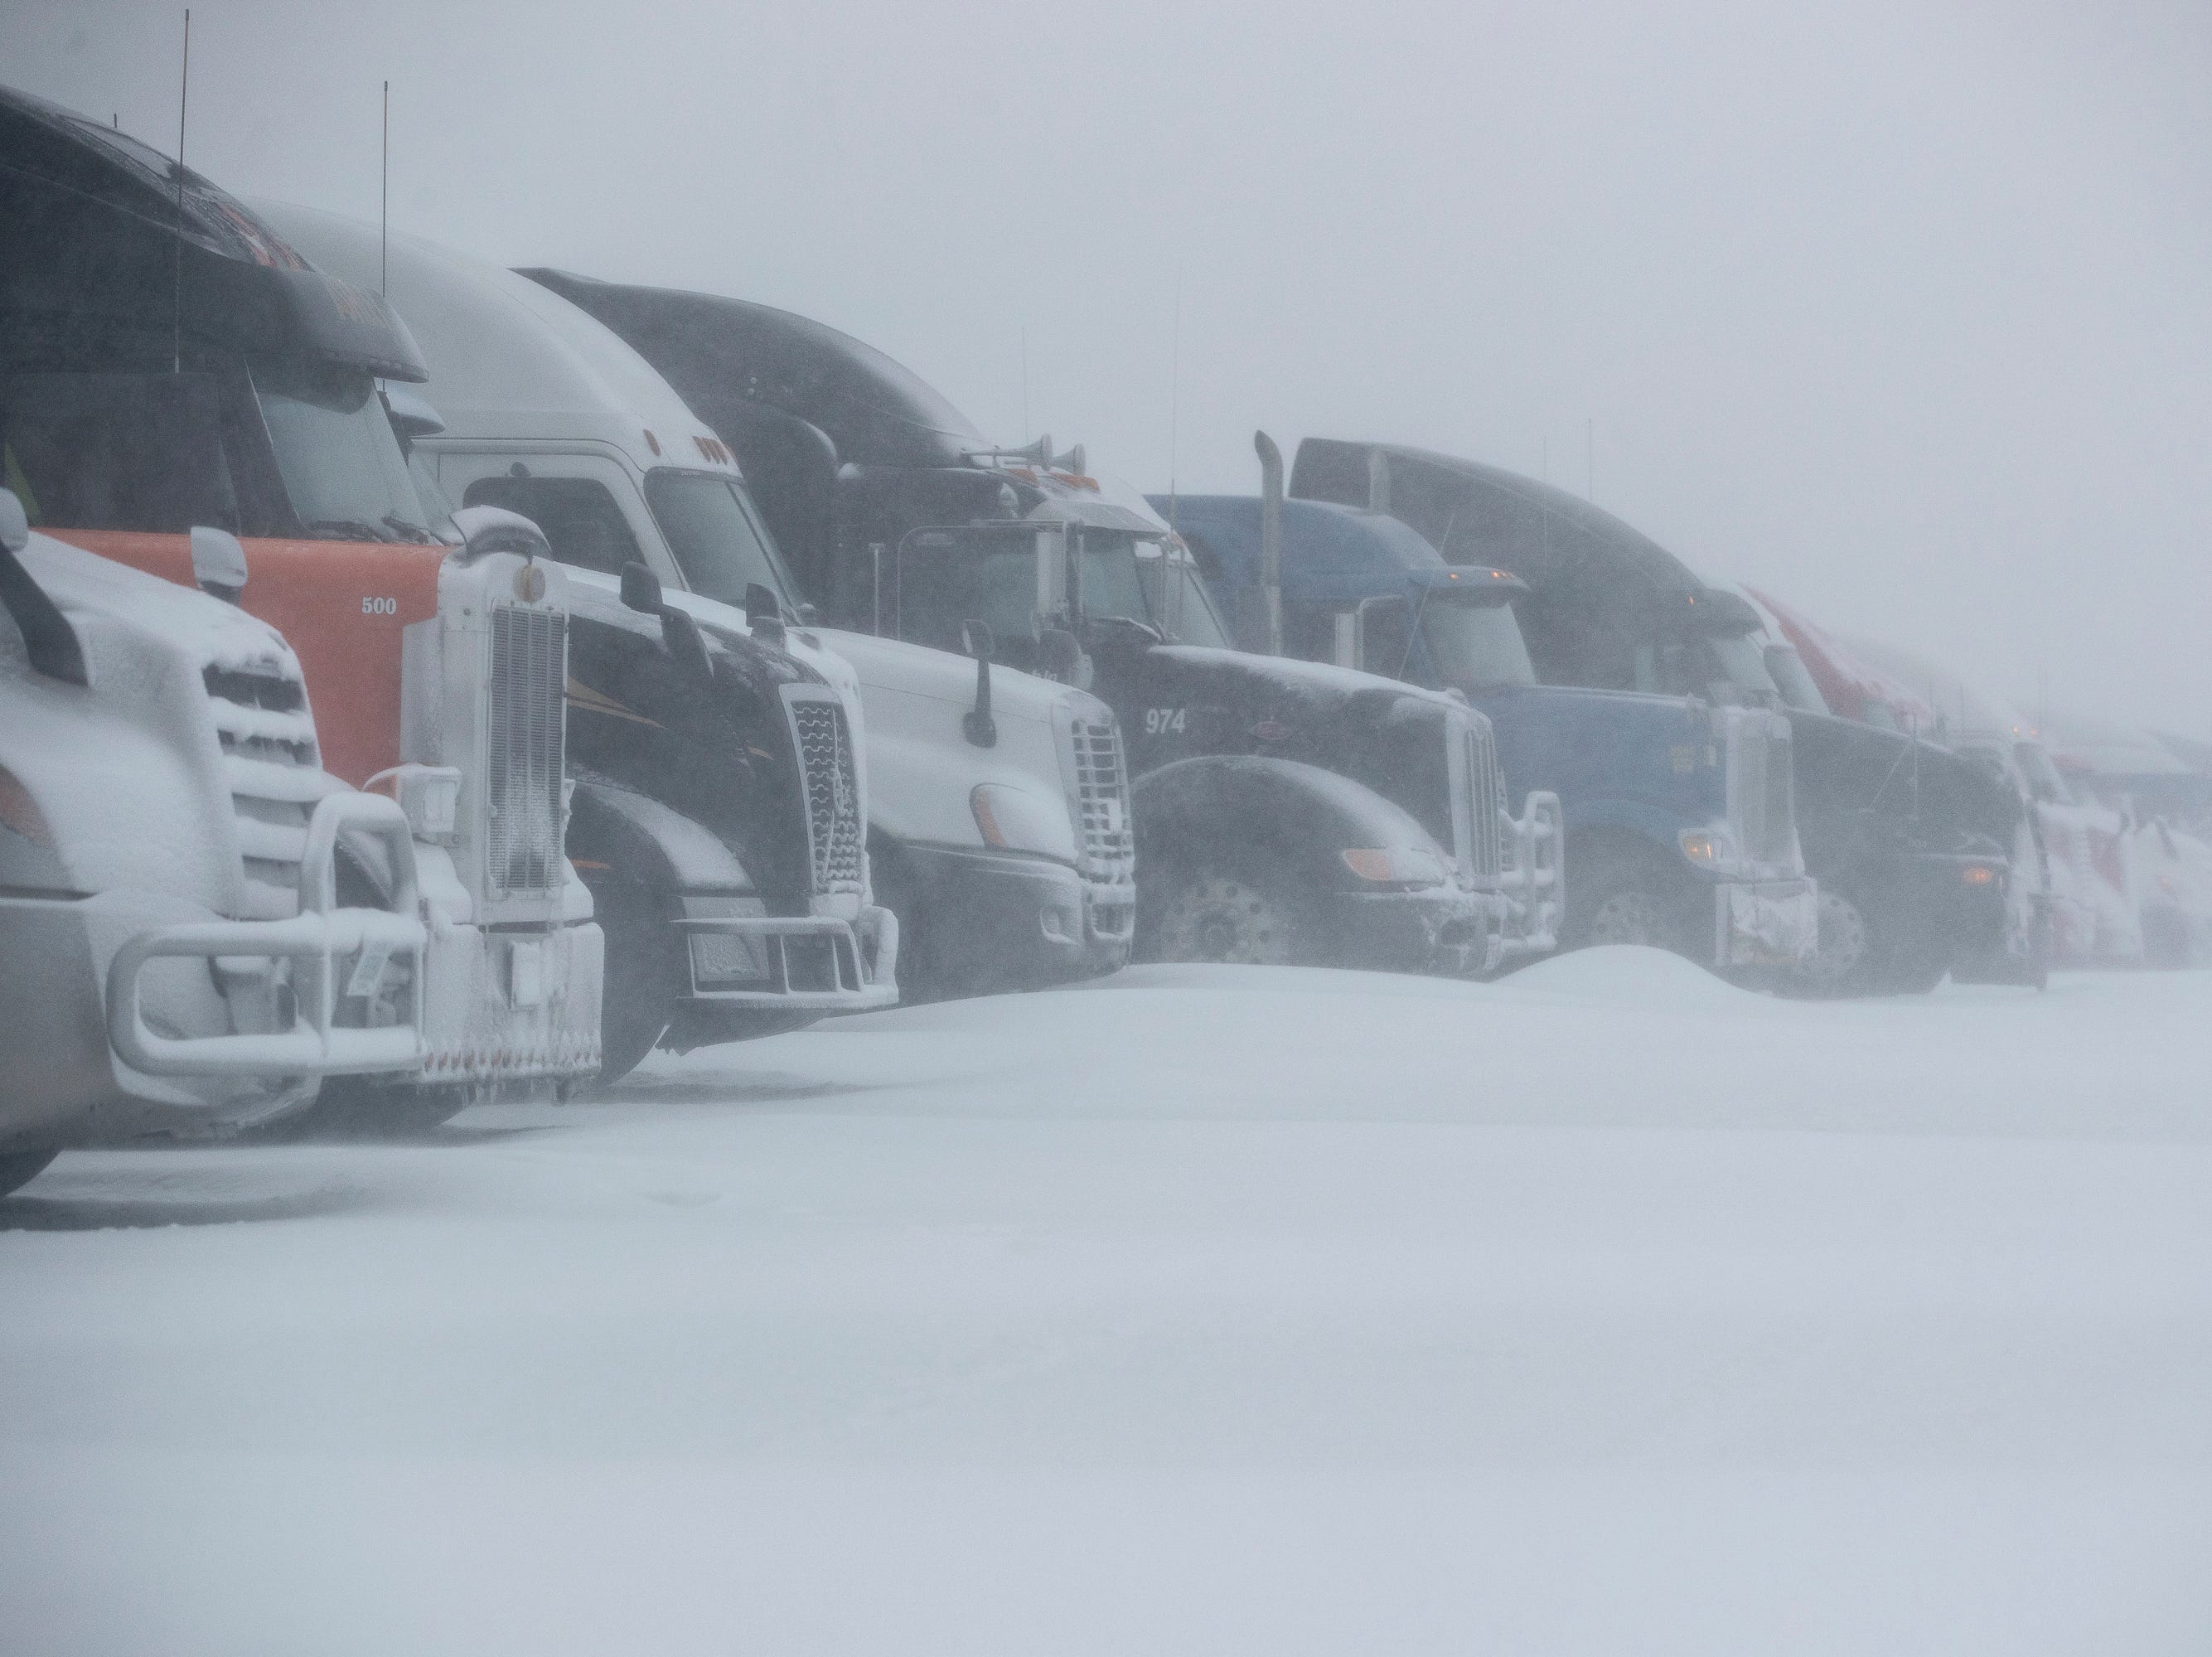 Trucks are parked in the snow at the Pilot Flying J near Interstate 90 in Rapid City, S.D., Wednesday, March 13, 2019. I-90 was closed from the Wyoming border to Oacoma, S.D., earlier in the day.